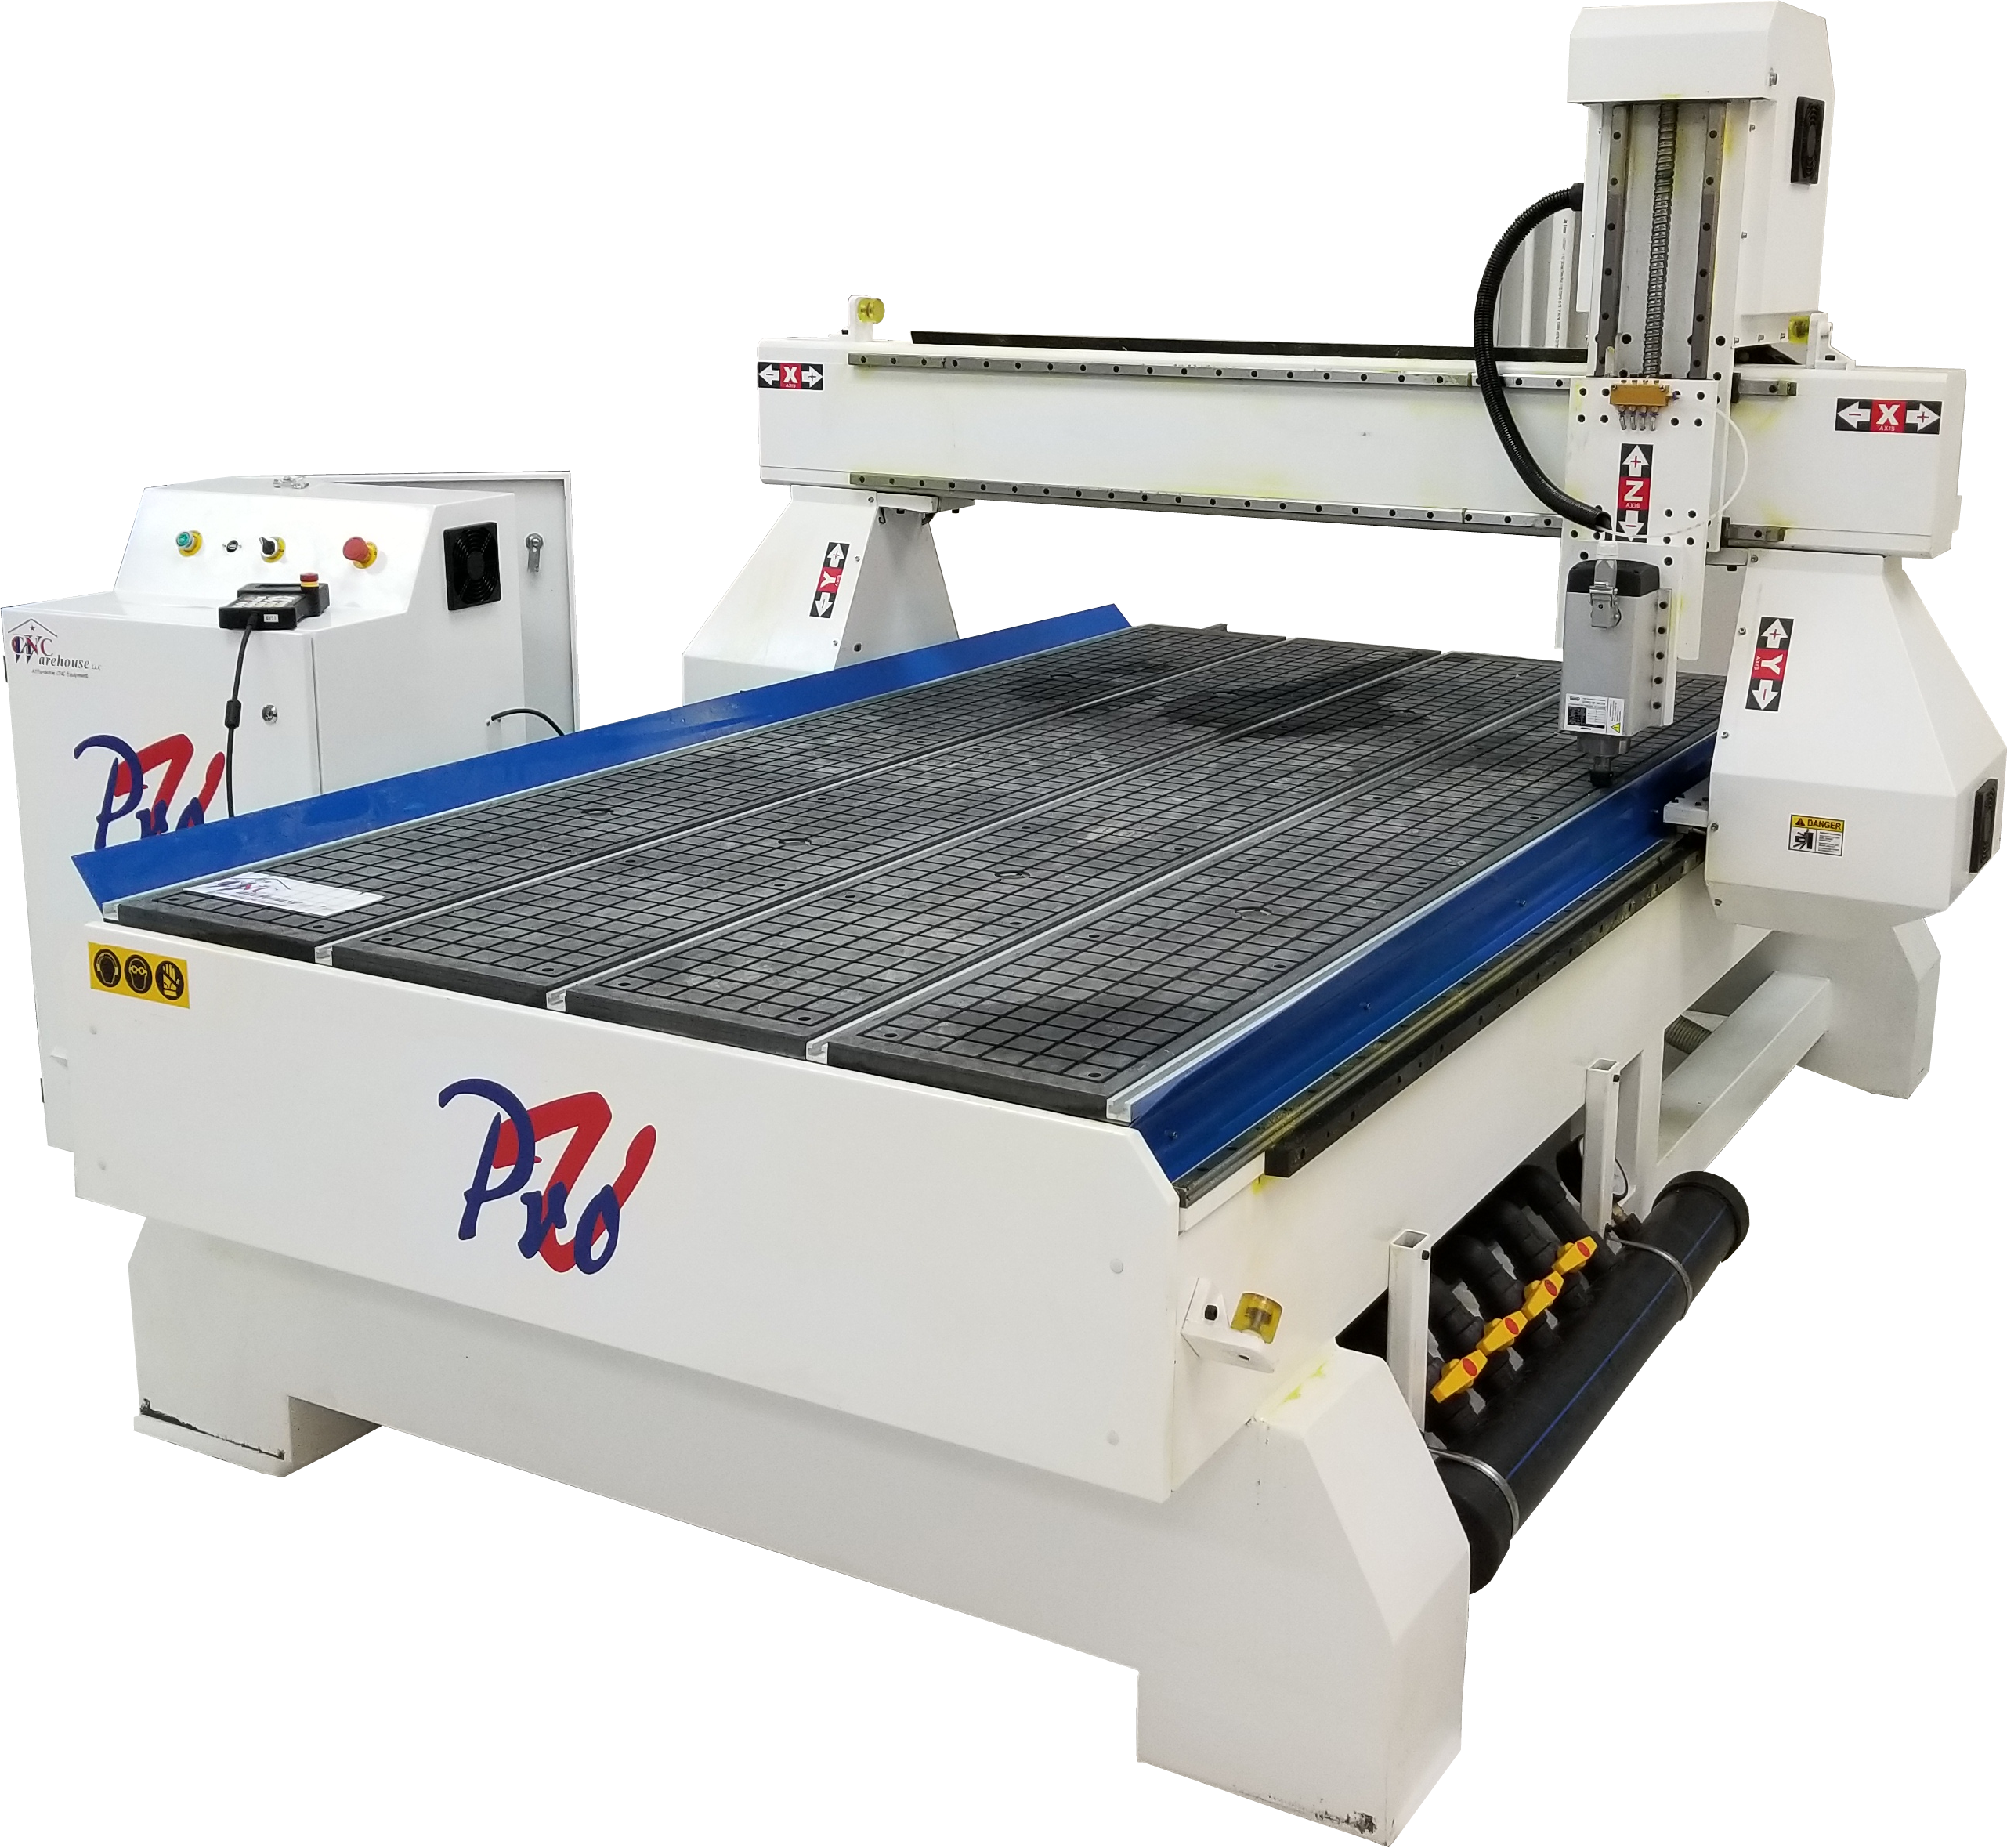 Tremendous Cnc 3 4 5 Axis Routers Aluminum Cutting Houston Stone Download Free Architecture Designs Rallybritishbridgeorg